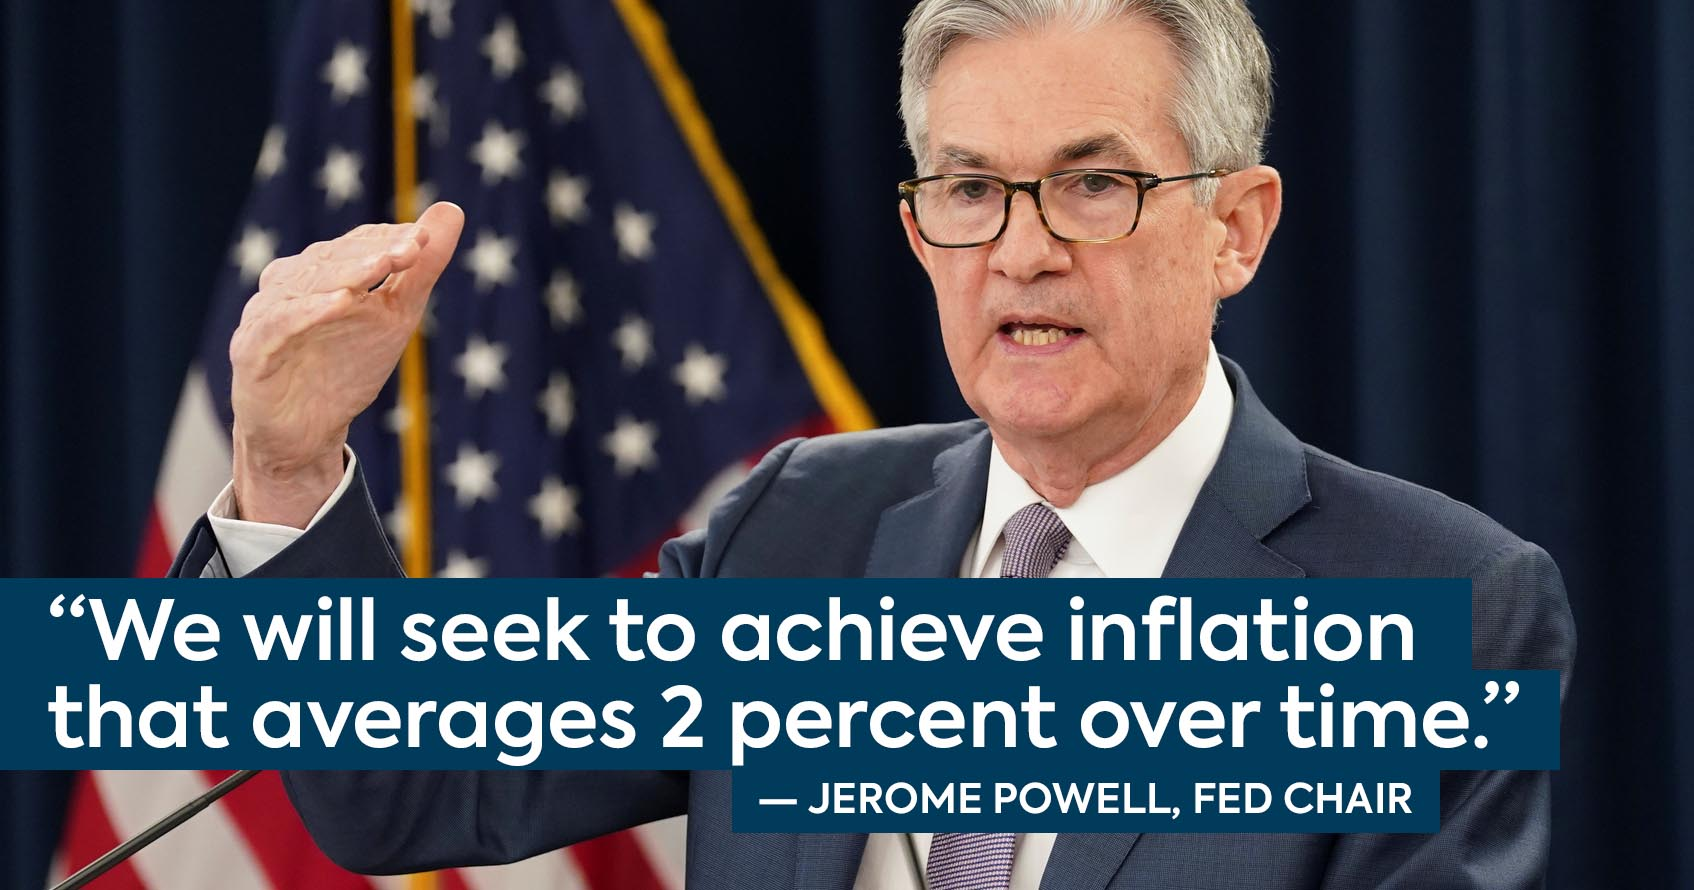 Jerome Powell, Fed Chairman